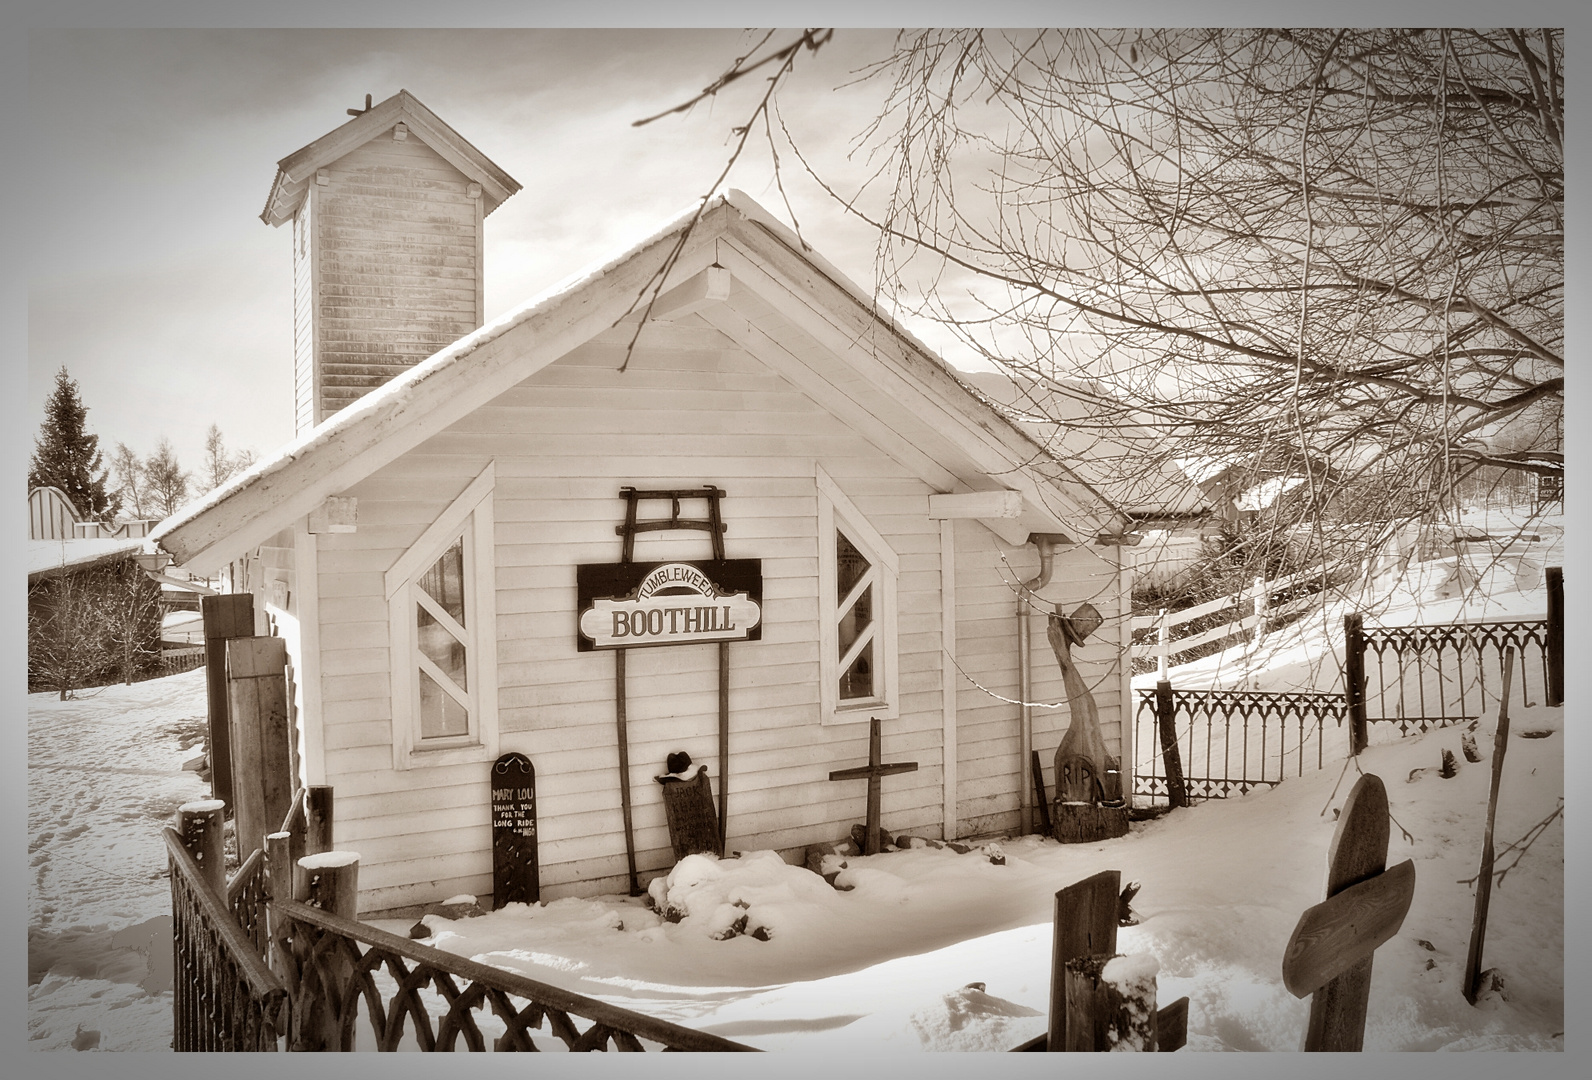 Pullman City - snow-covered boothill